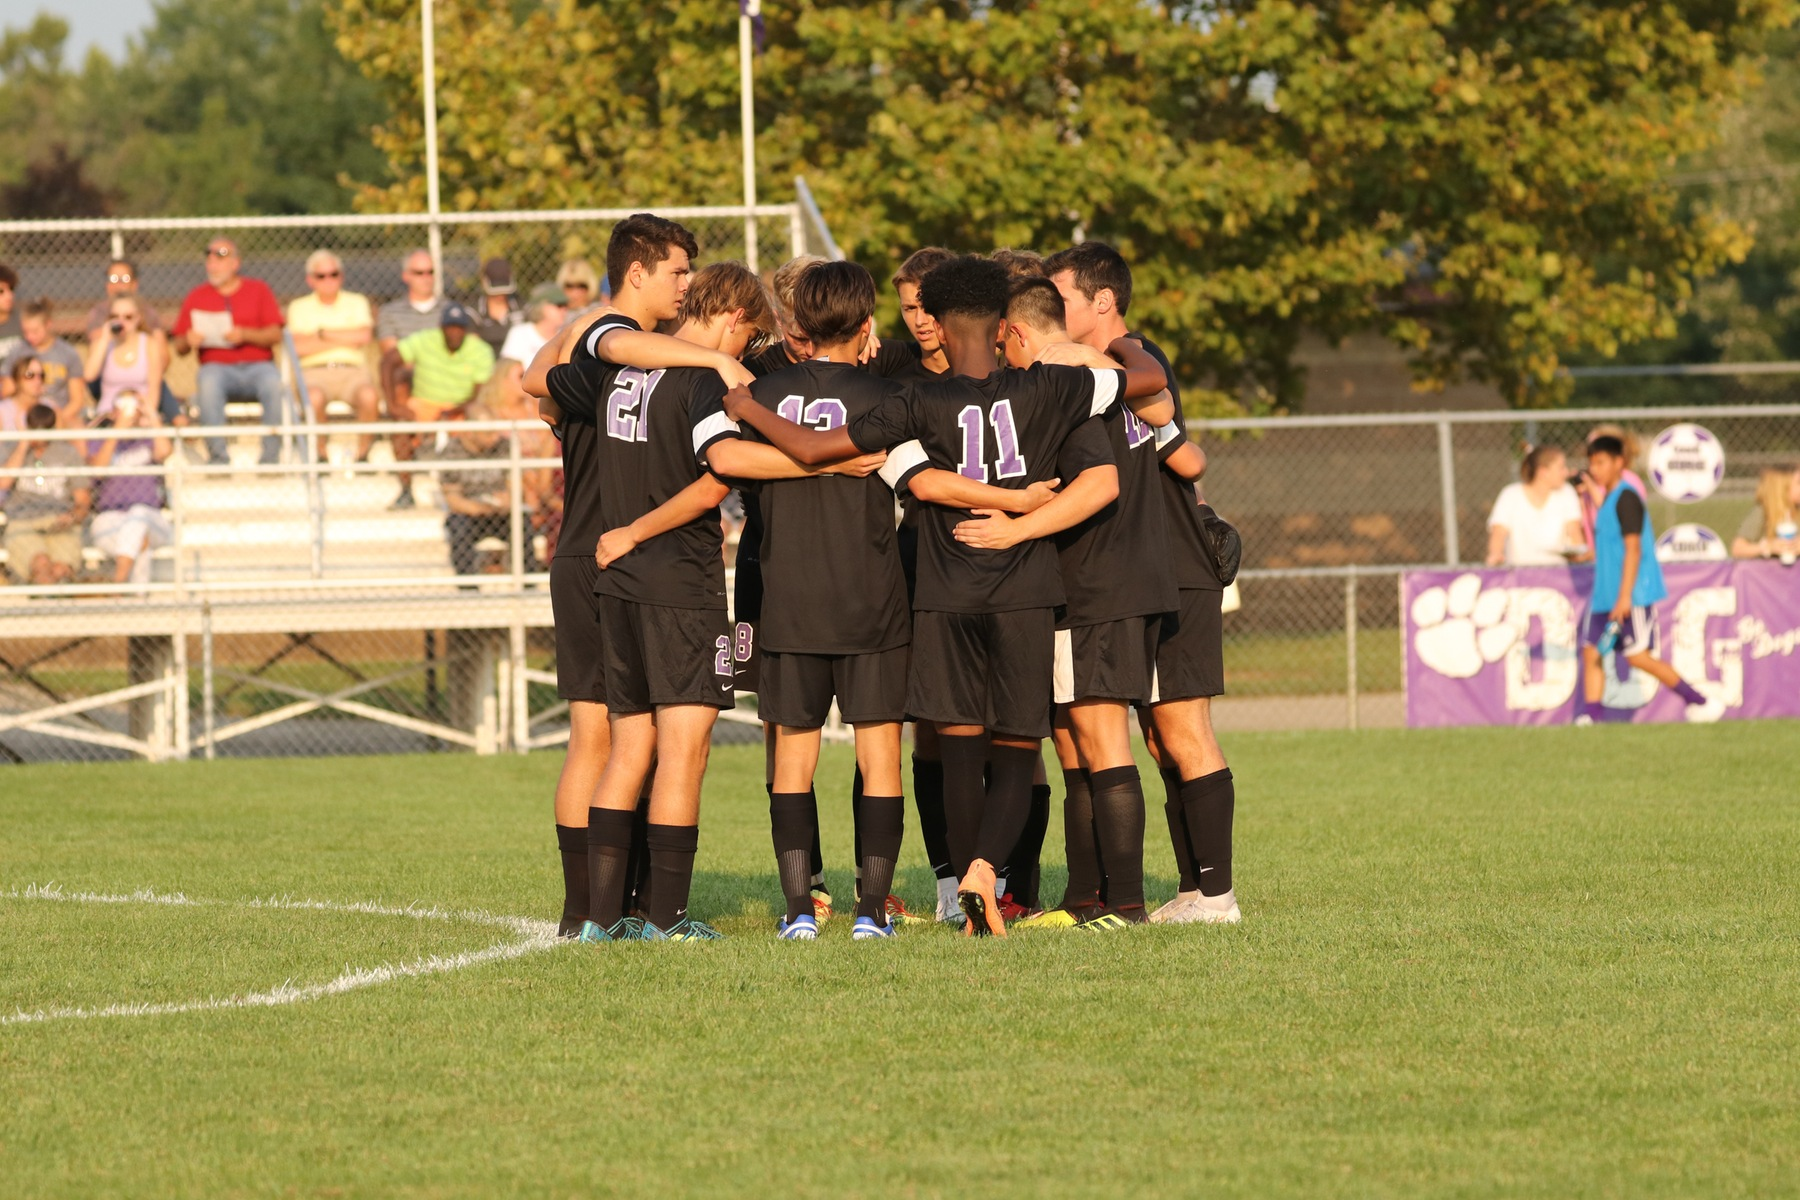 Boys' Soccer Starts the Season Strong